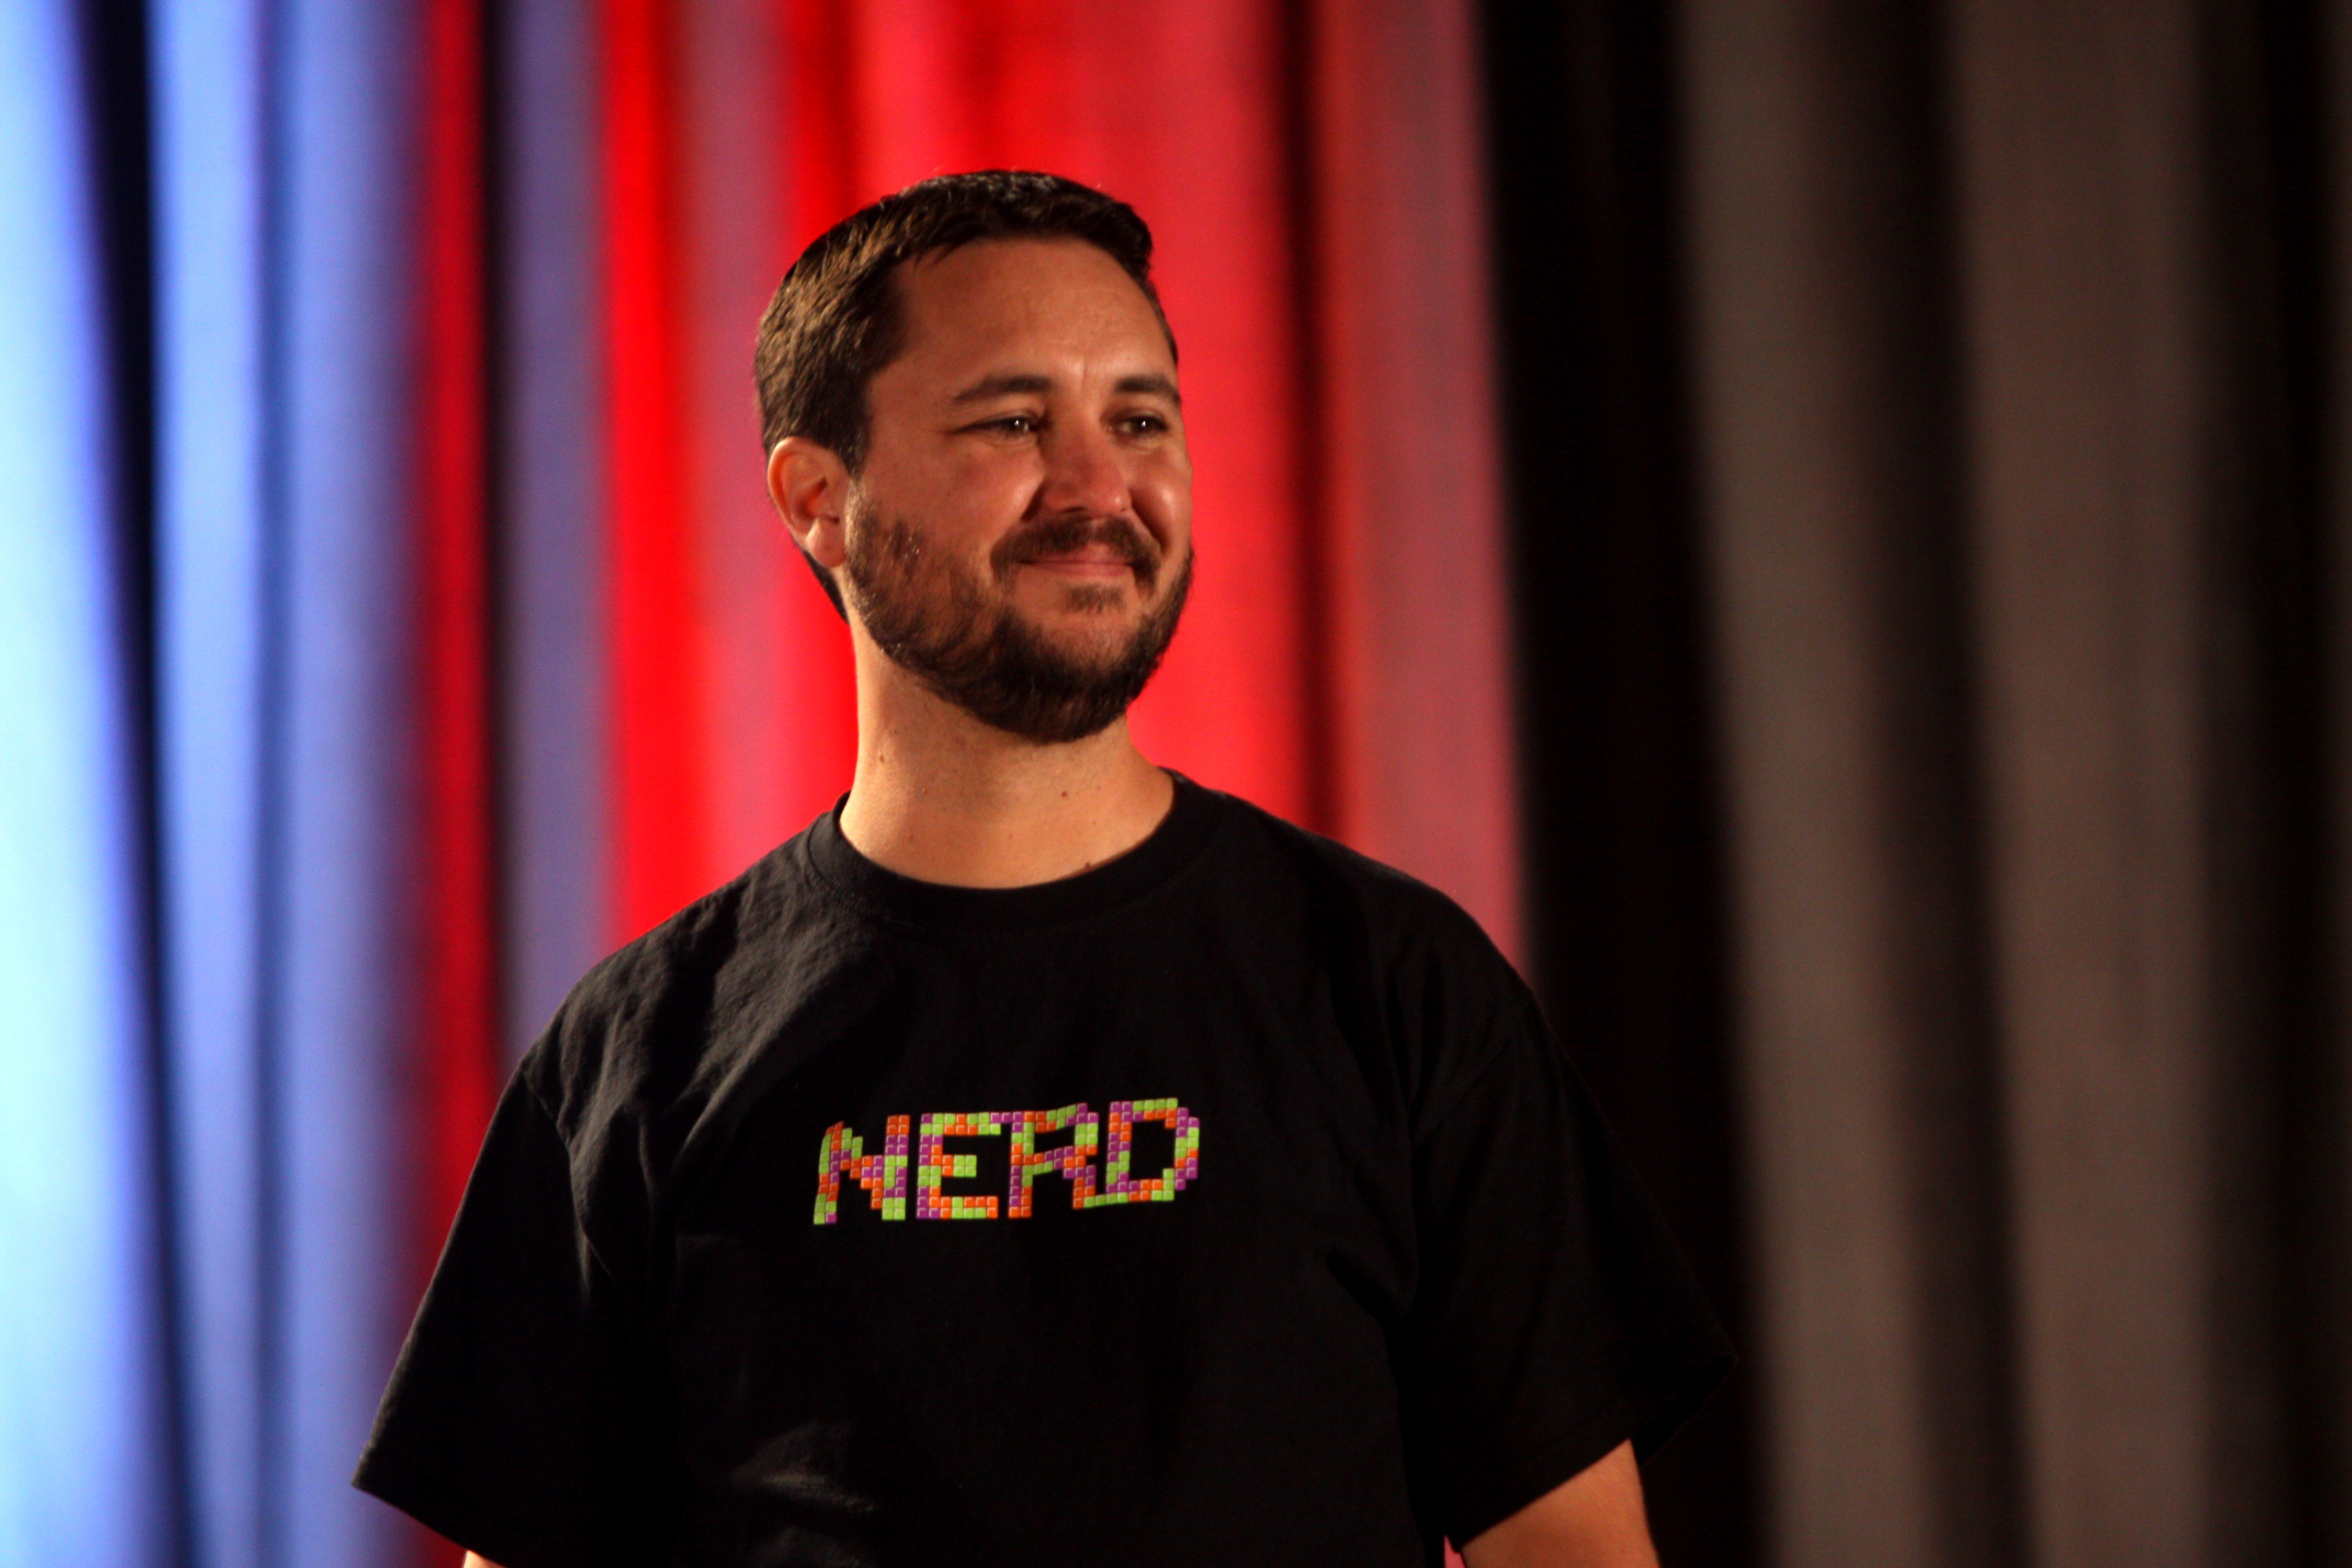 Wil Wheaton speaking at the 2012 Phoenix Comicon on May 27, 2012 in Phoenix, Arizona   Photo: Gage Skidmore, CC BY-SA 2.0, Wikimedia Commons